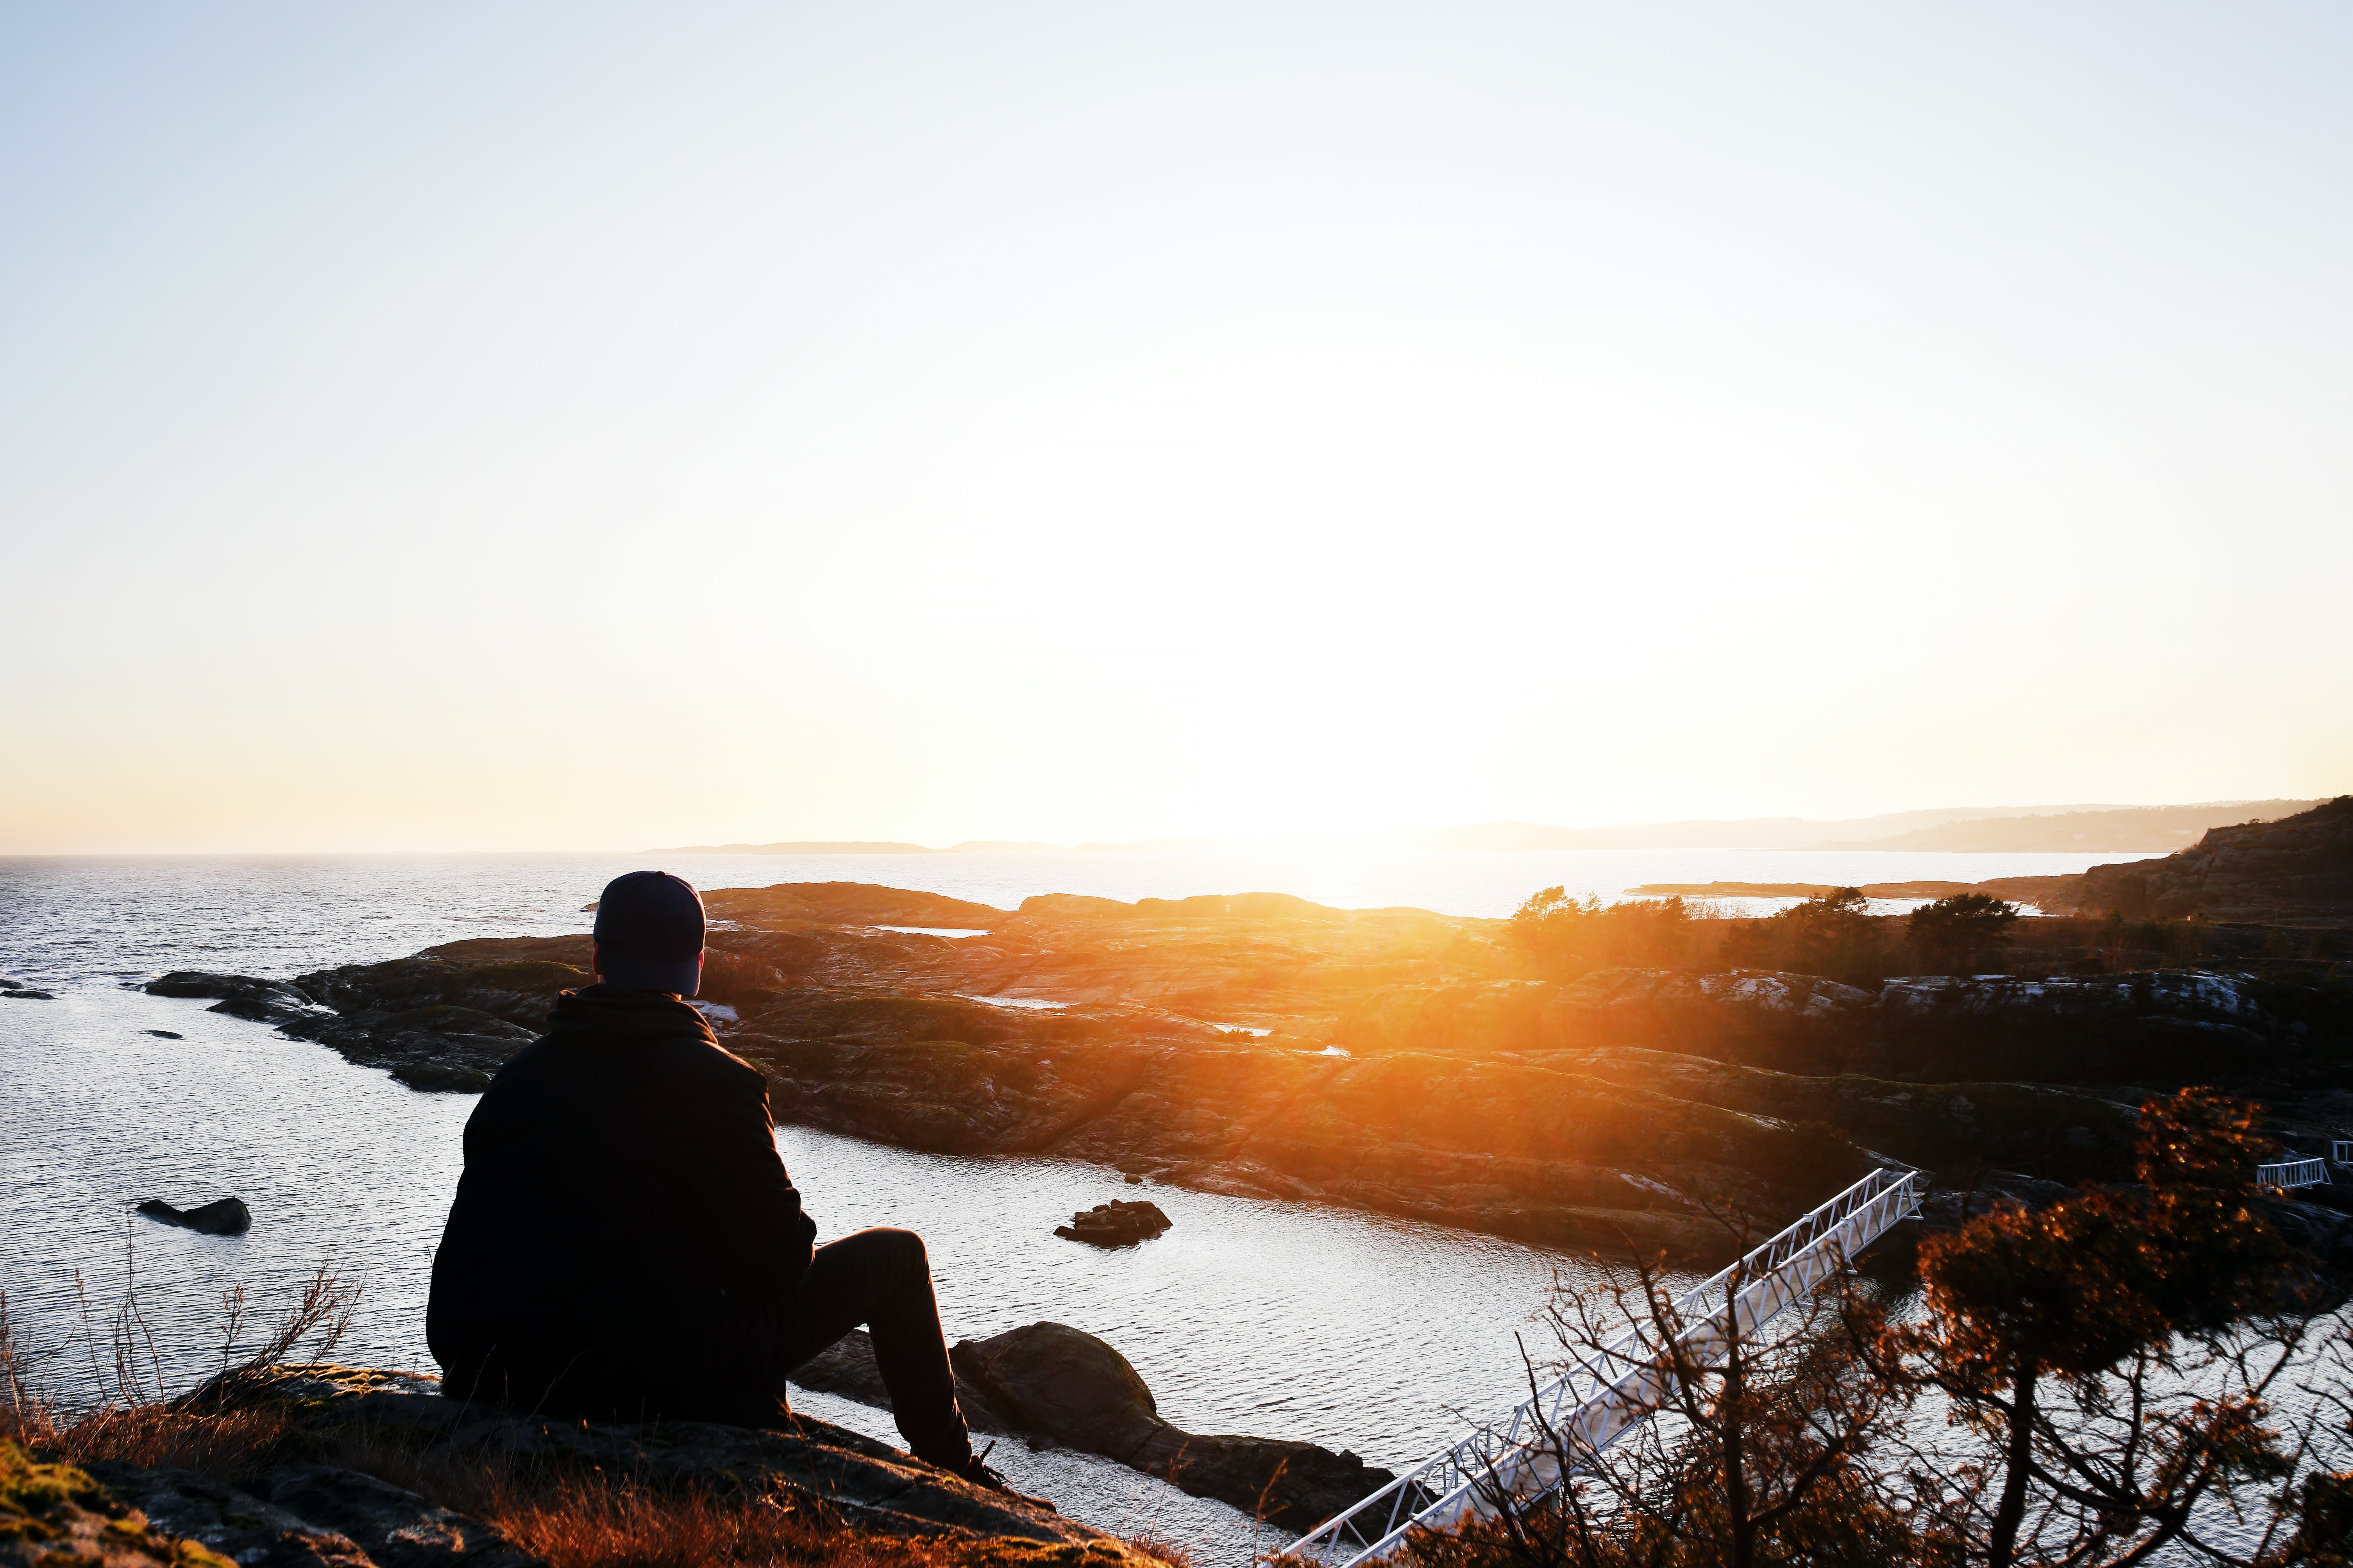 Silhouette Photo of Person Sitting Near Cliff during Golden Hour